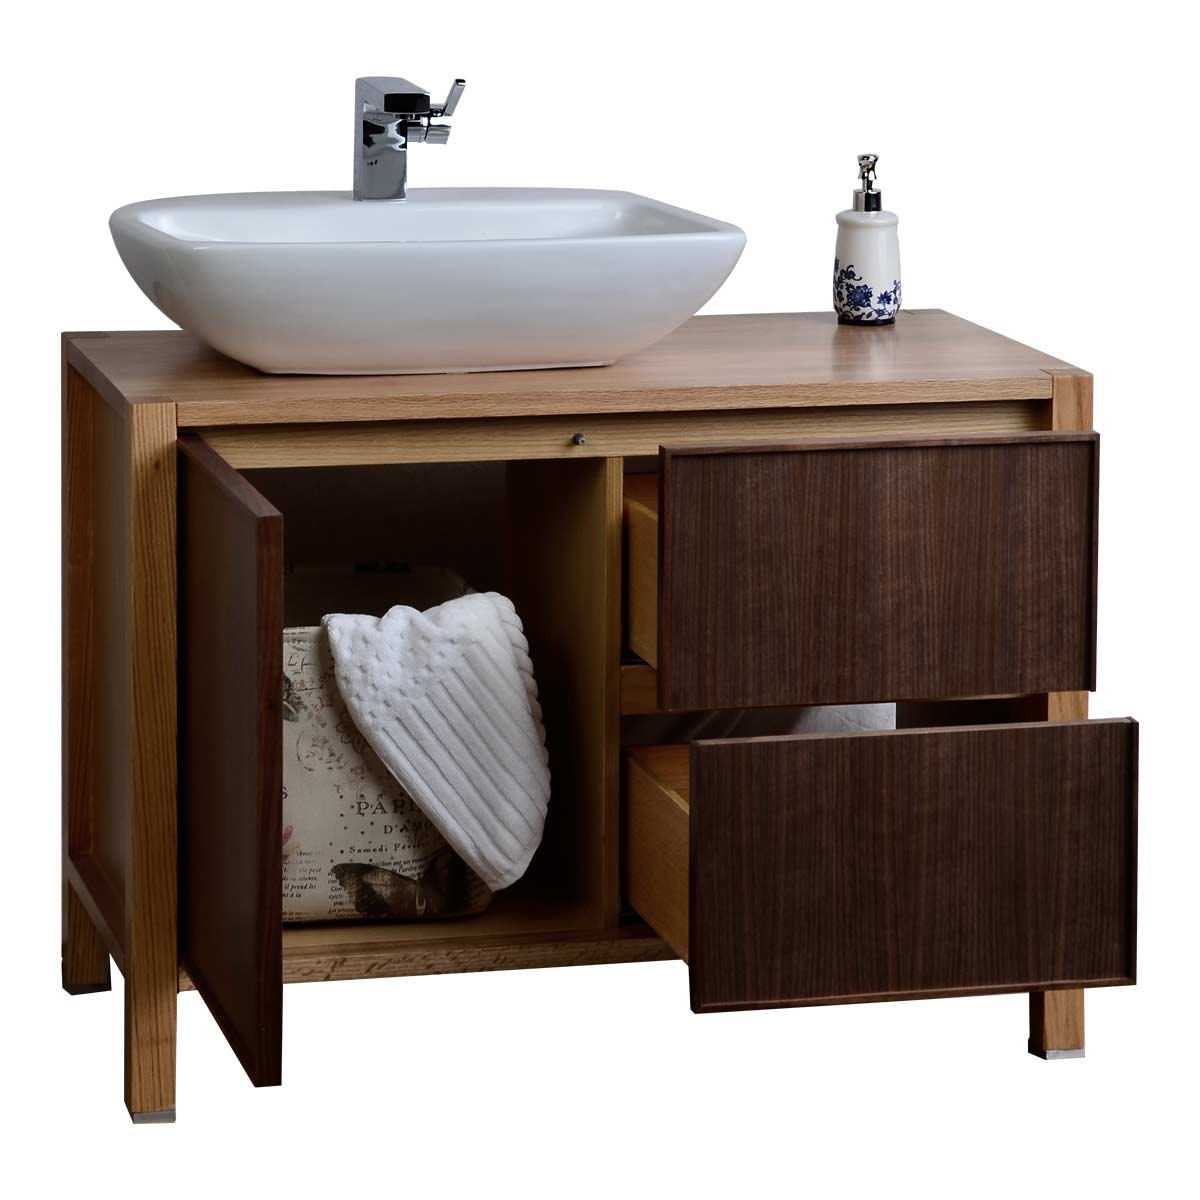 Fancy Real Wood Bathroom Vanities For 42 Single Solid Wood Bathroom Vanity regarding 44 Bathroom Vanity